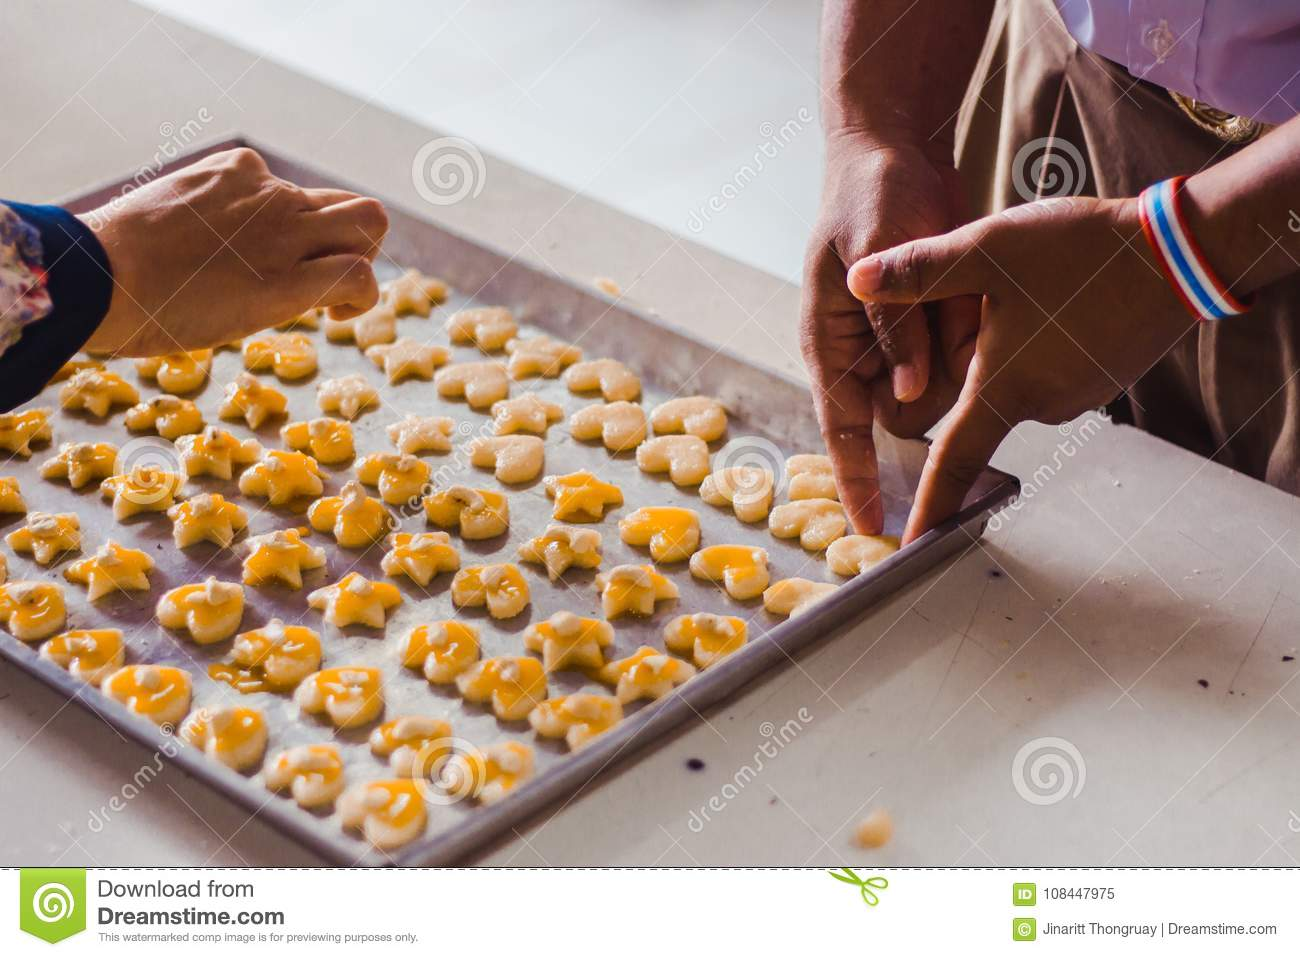 Student `s hands make Singapore cookies from dough in school.